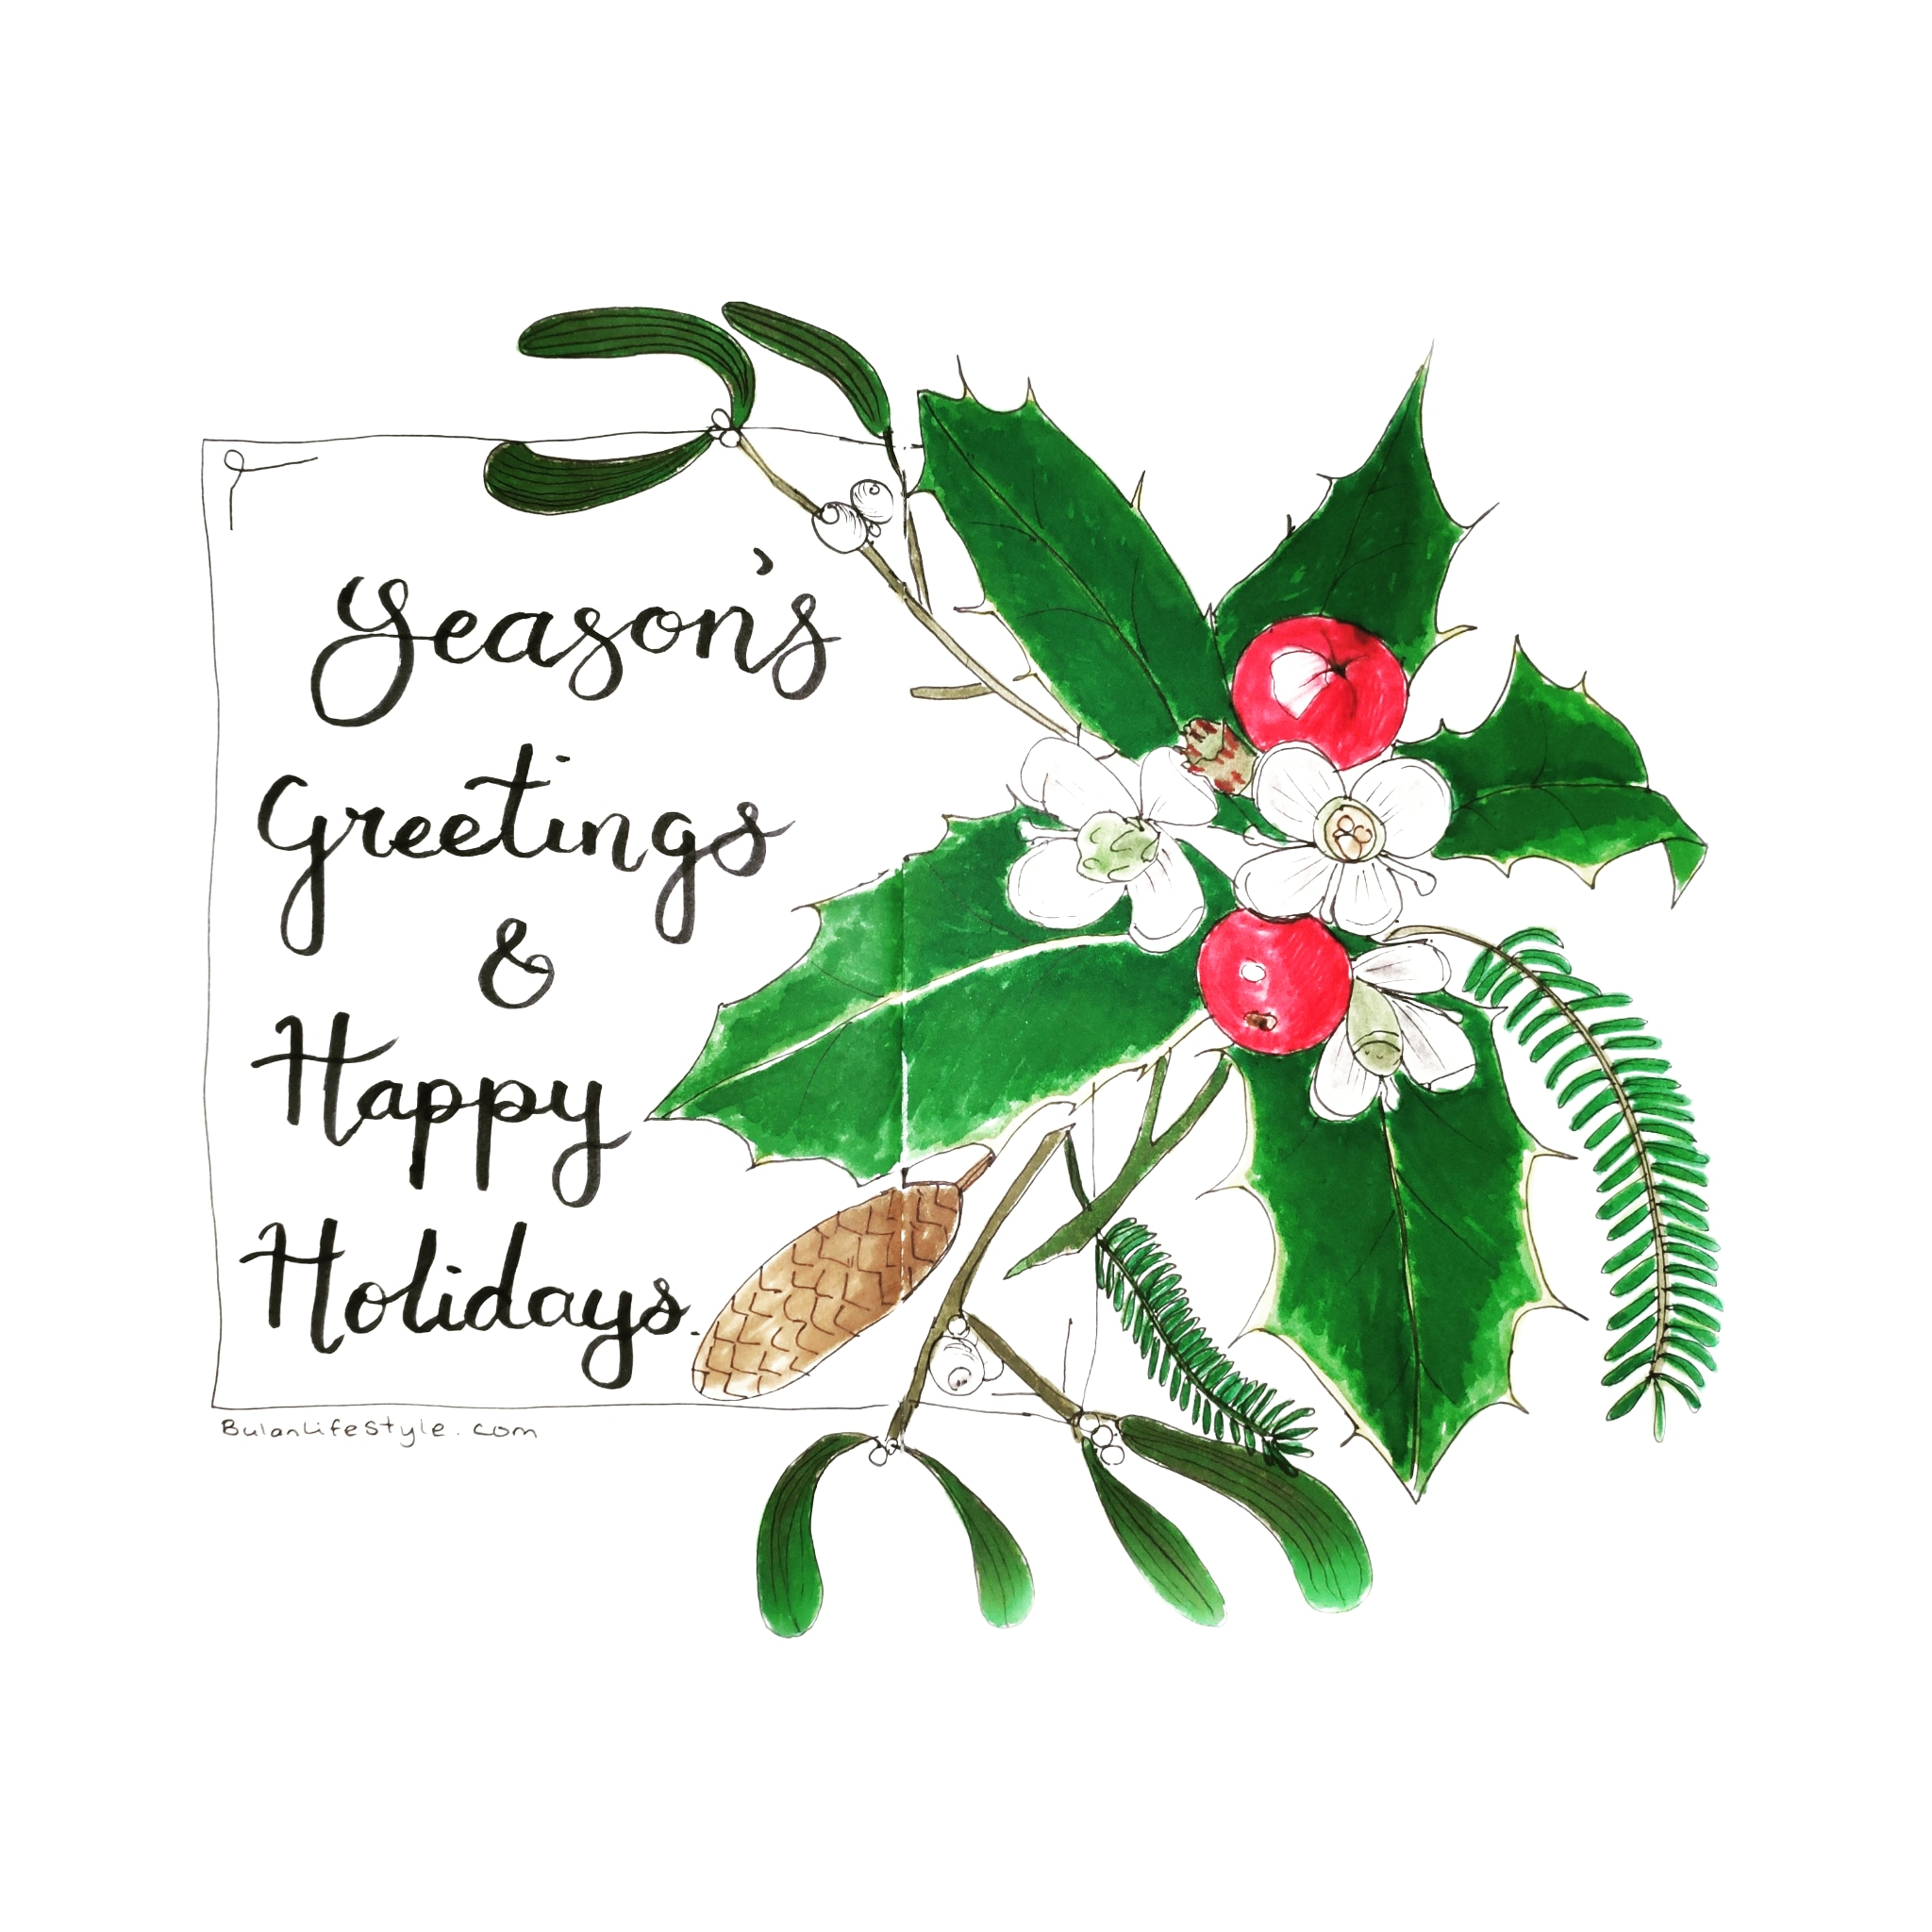 Season's greetings and Happy holidays